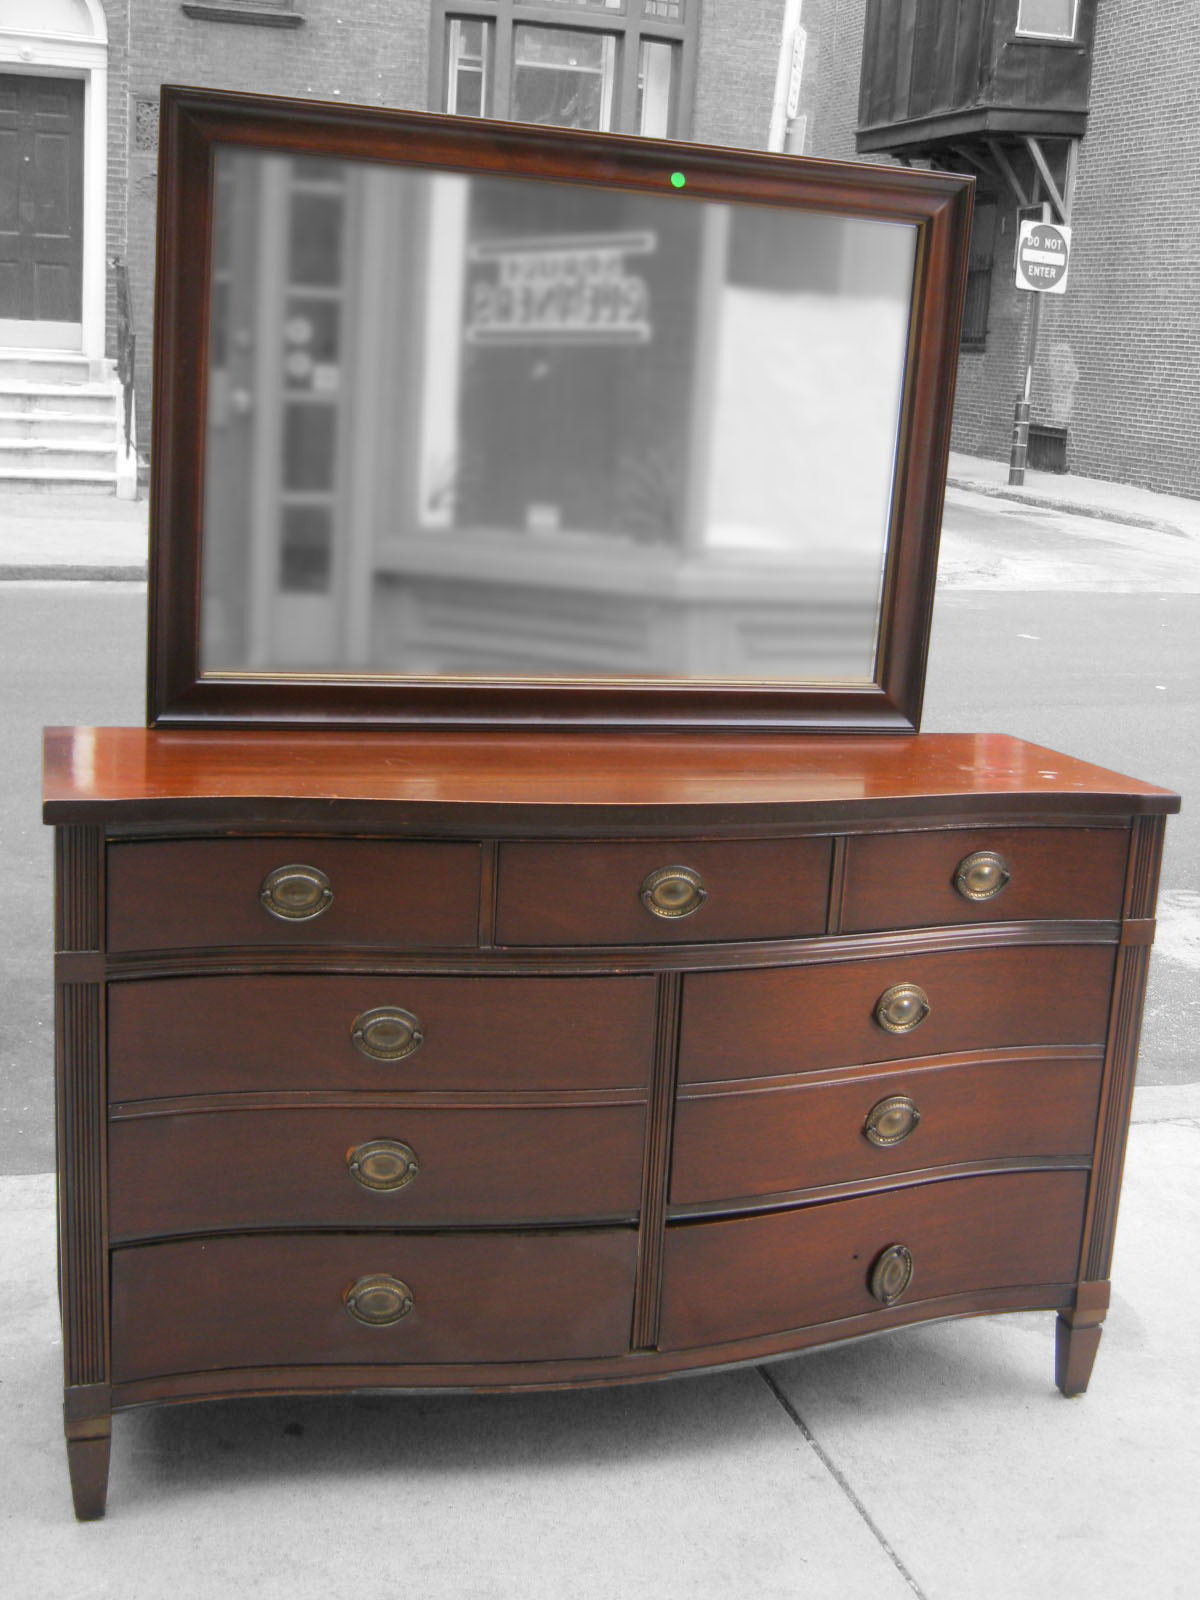 uhuru furniture collectibles mahogany bureau with